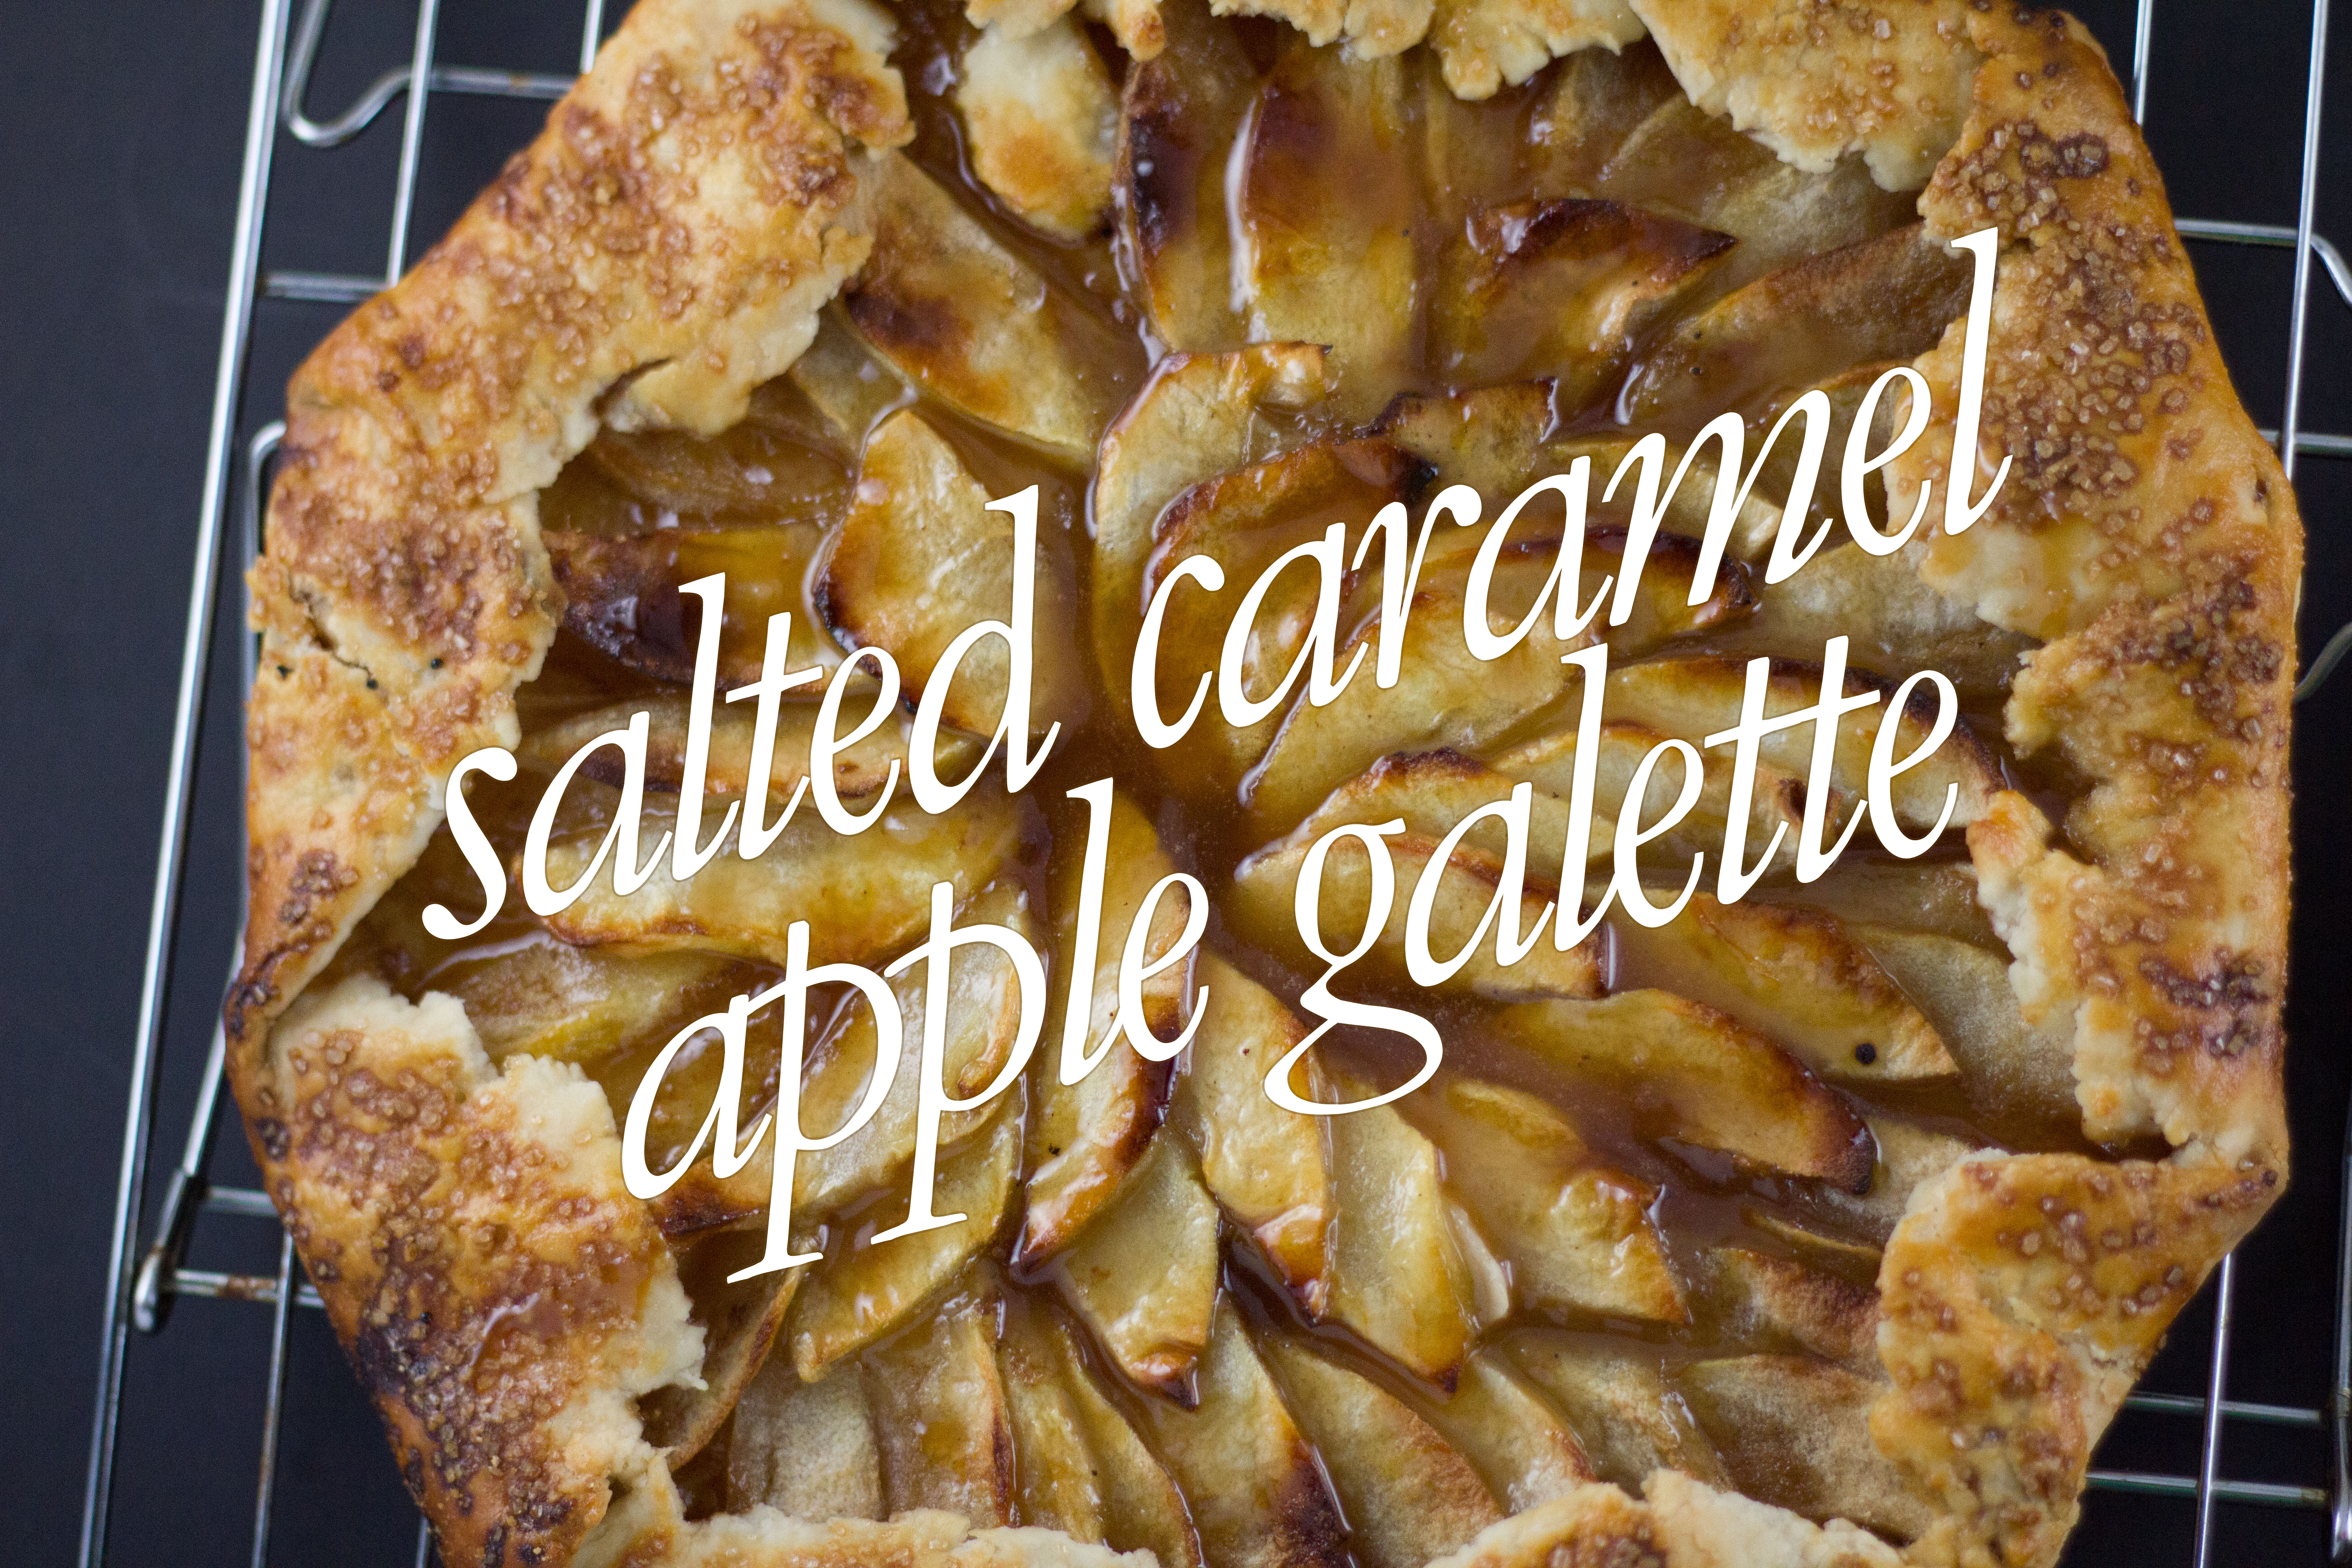 salted caramel apple galette (2 of 5) text